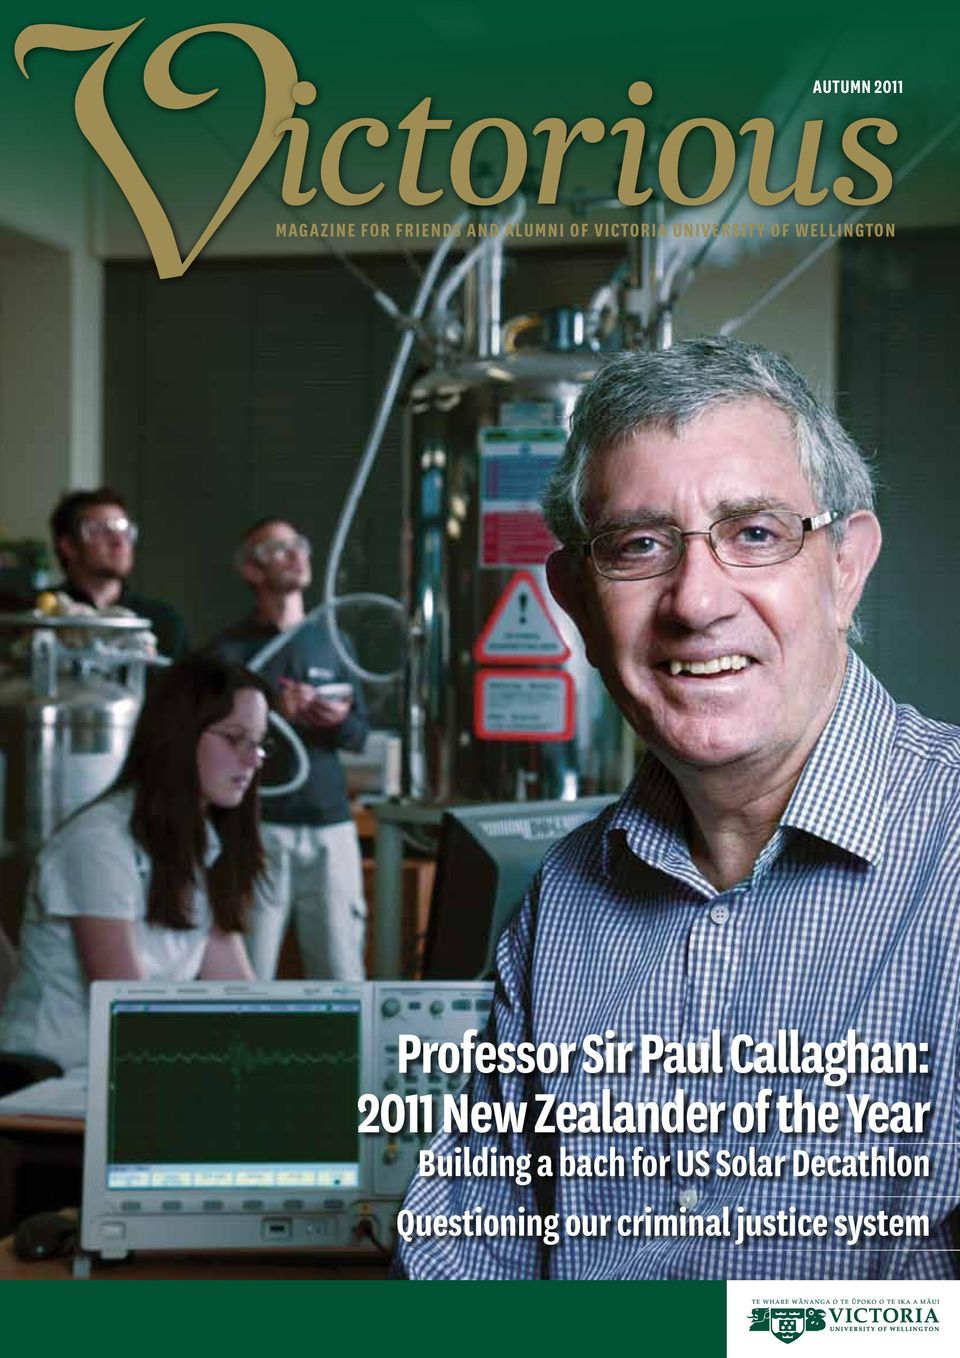 Professor Sir Paul Callaghan: 2011 New Zealander of the Year